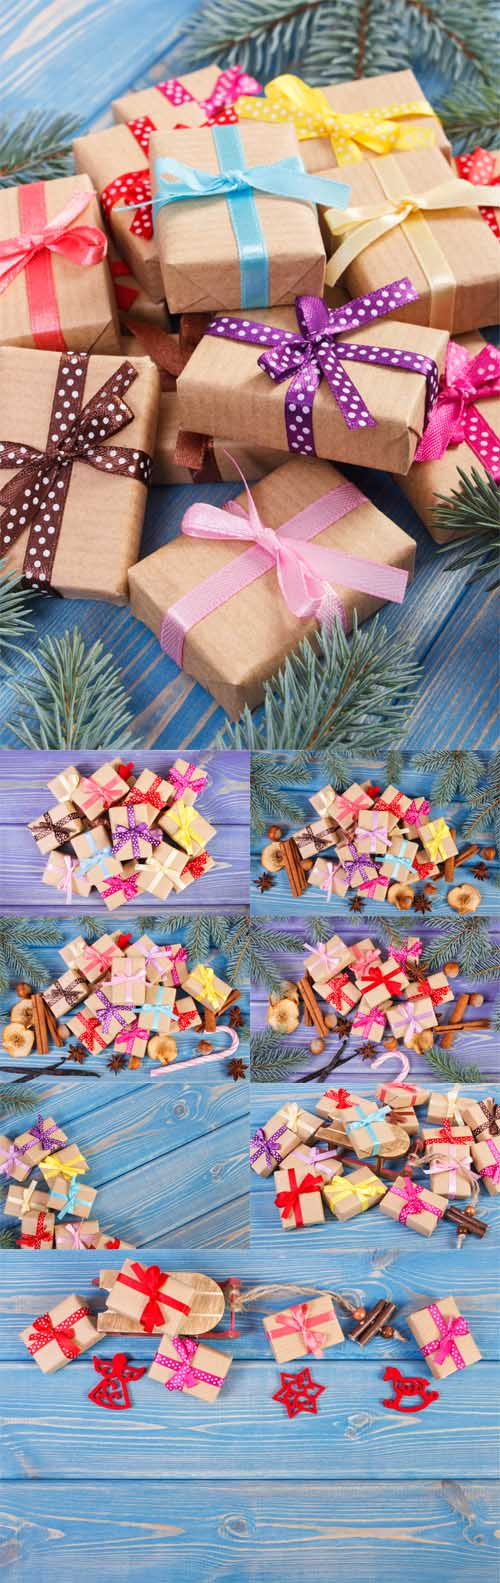 Photo Wooden sled and wrapped gifts with ribbons for Christmas or other celebration